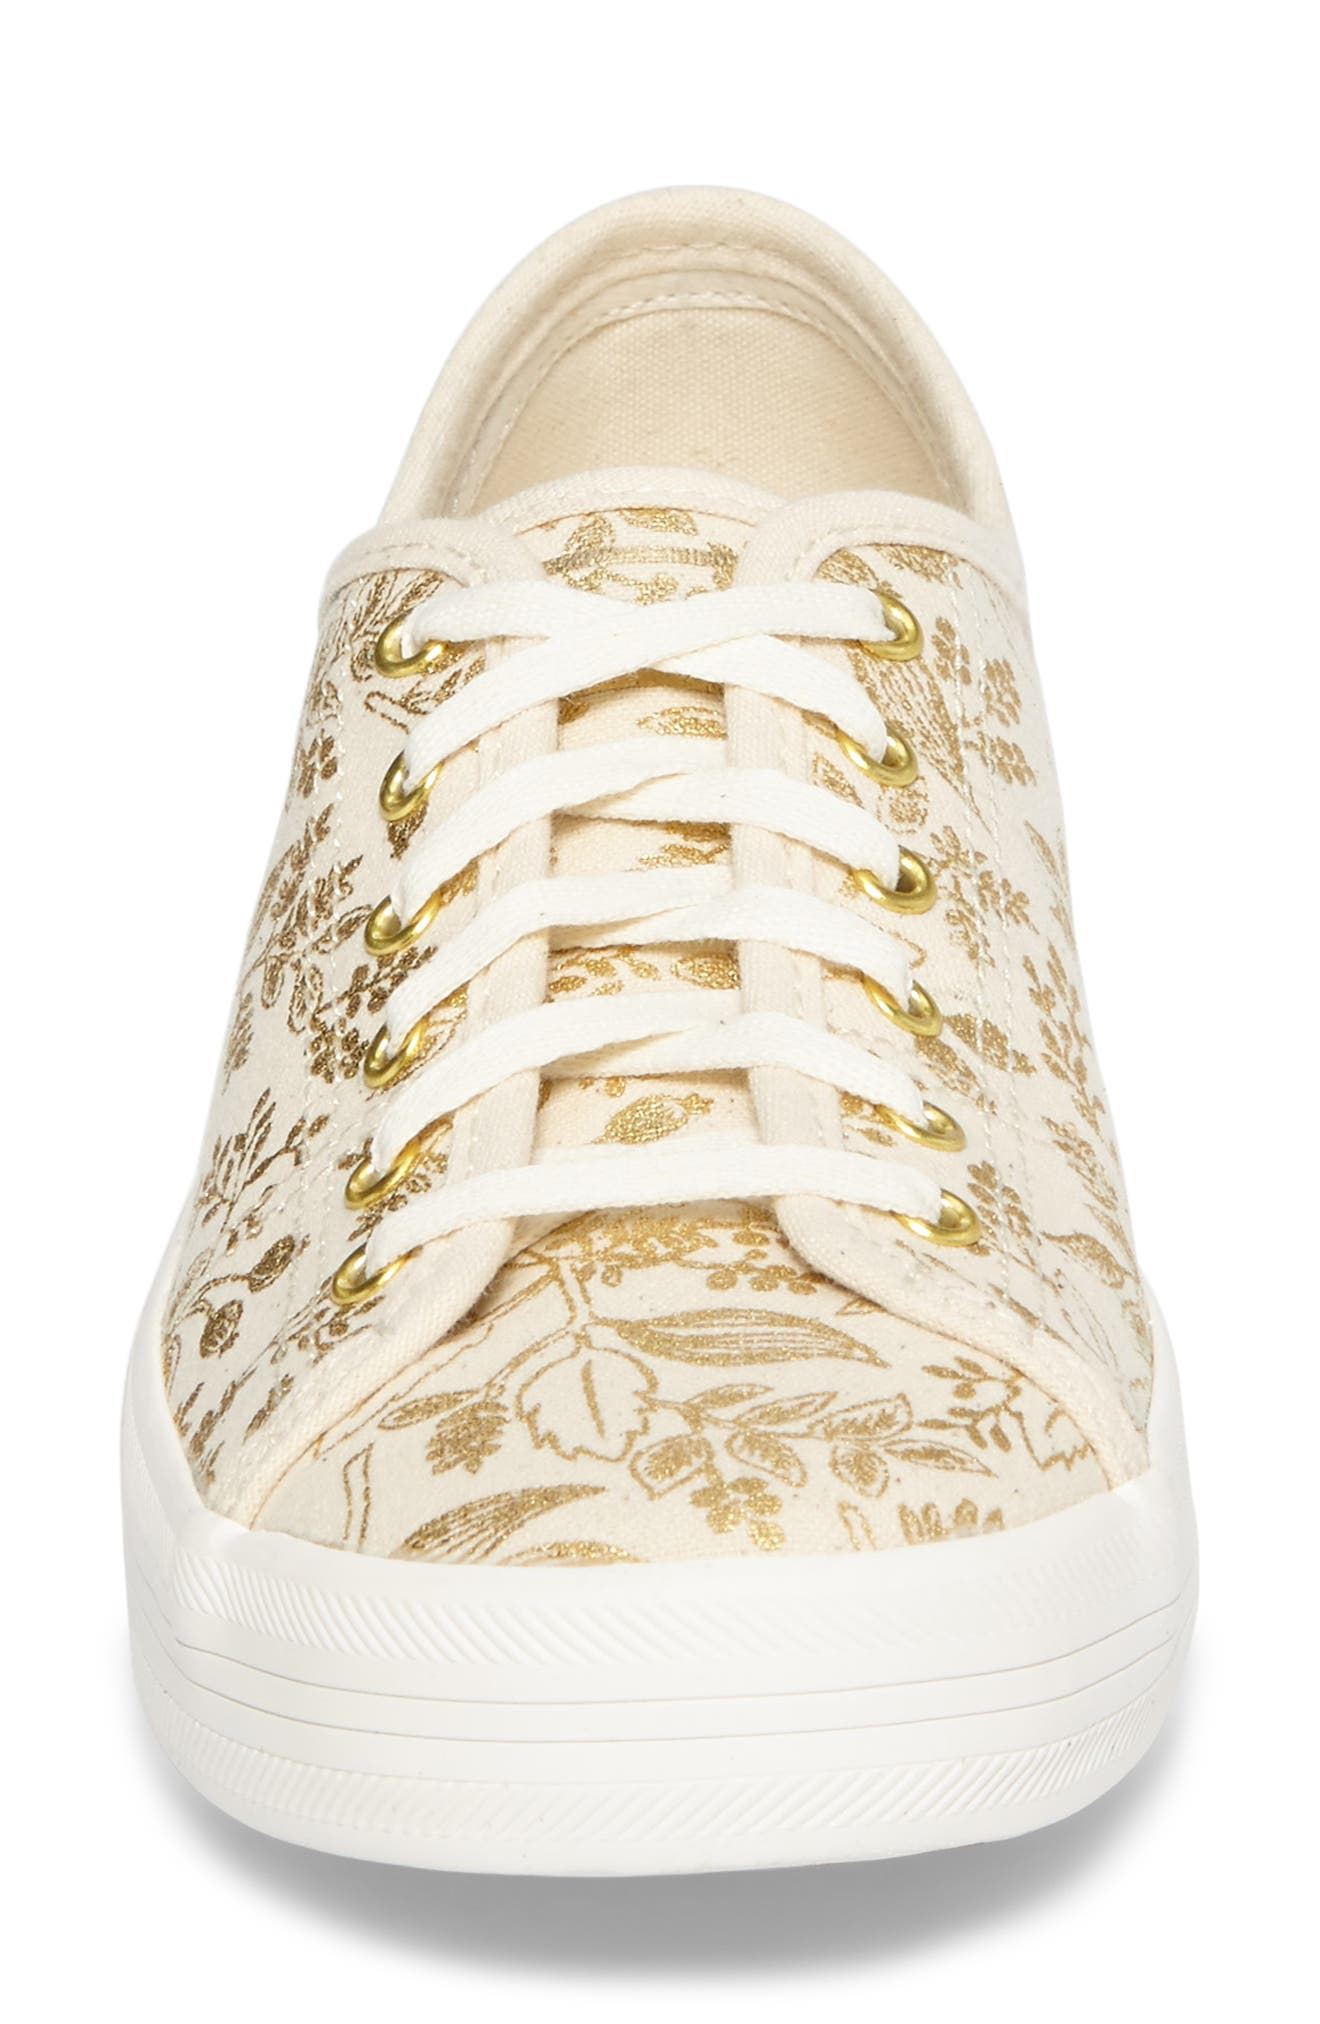 x Rifle Paper Co. Queen Anne Sneaker,                             Alternate thumbnail 4, color,                             Natural